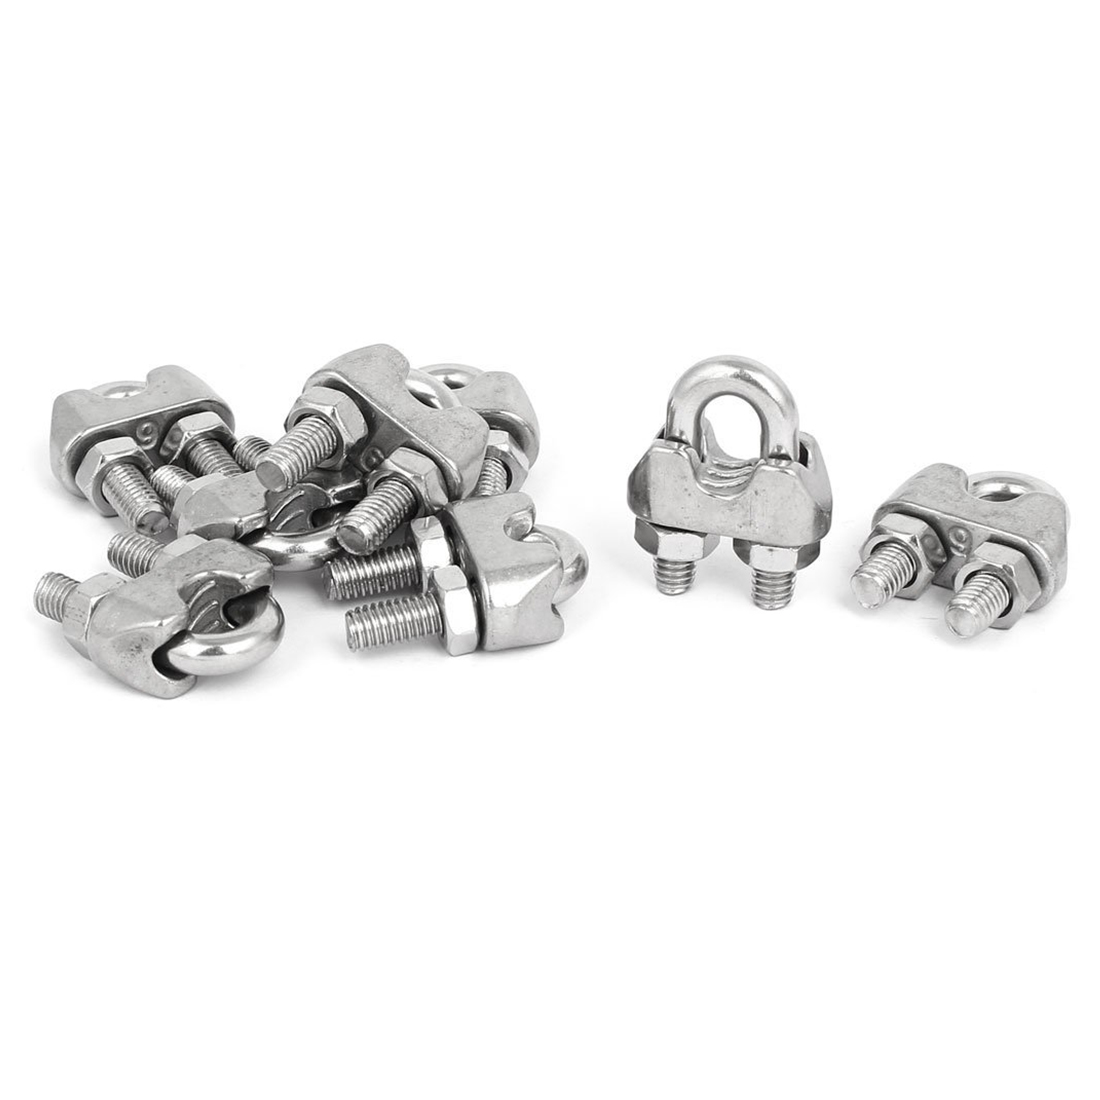 a9d5502e992dd M6 1 4 Inch 304 Stainless Steel U-Shape Bolt Saddle Clamps Cable Wire Rope  Clips 8 pcs